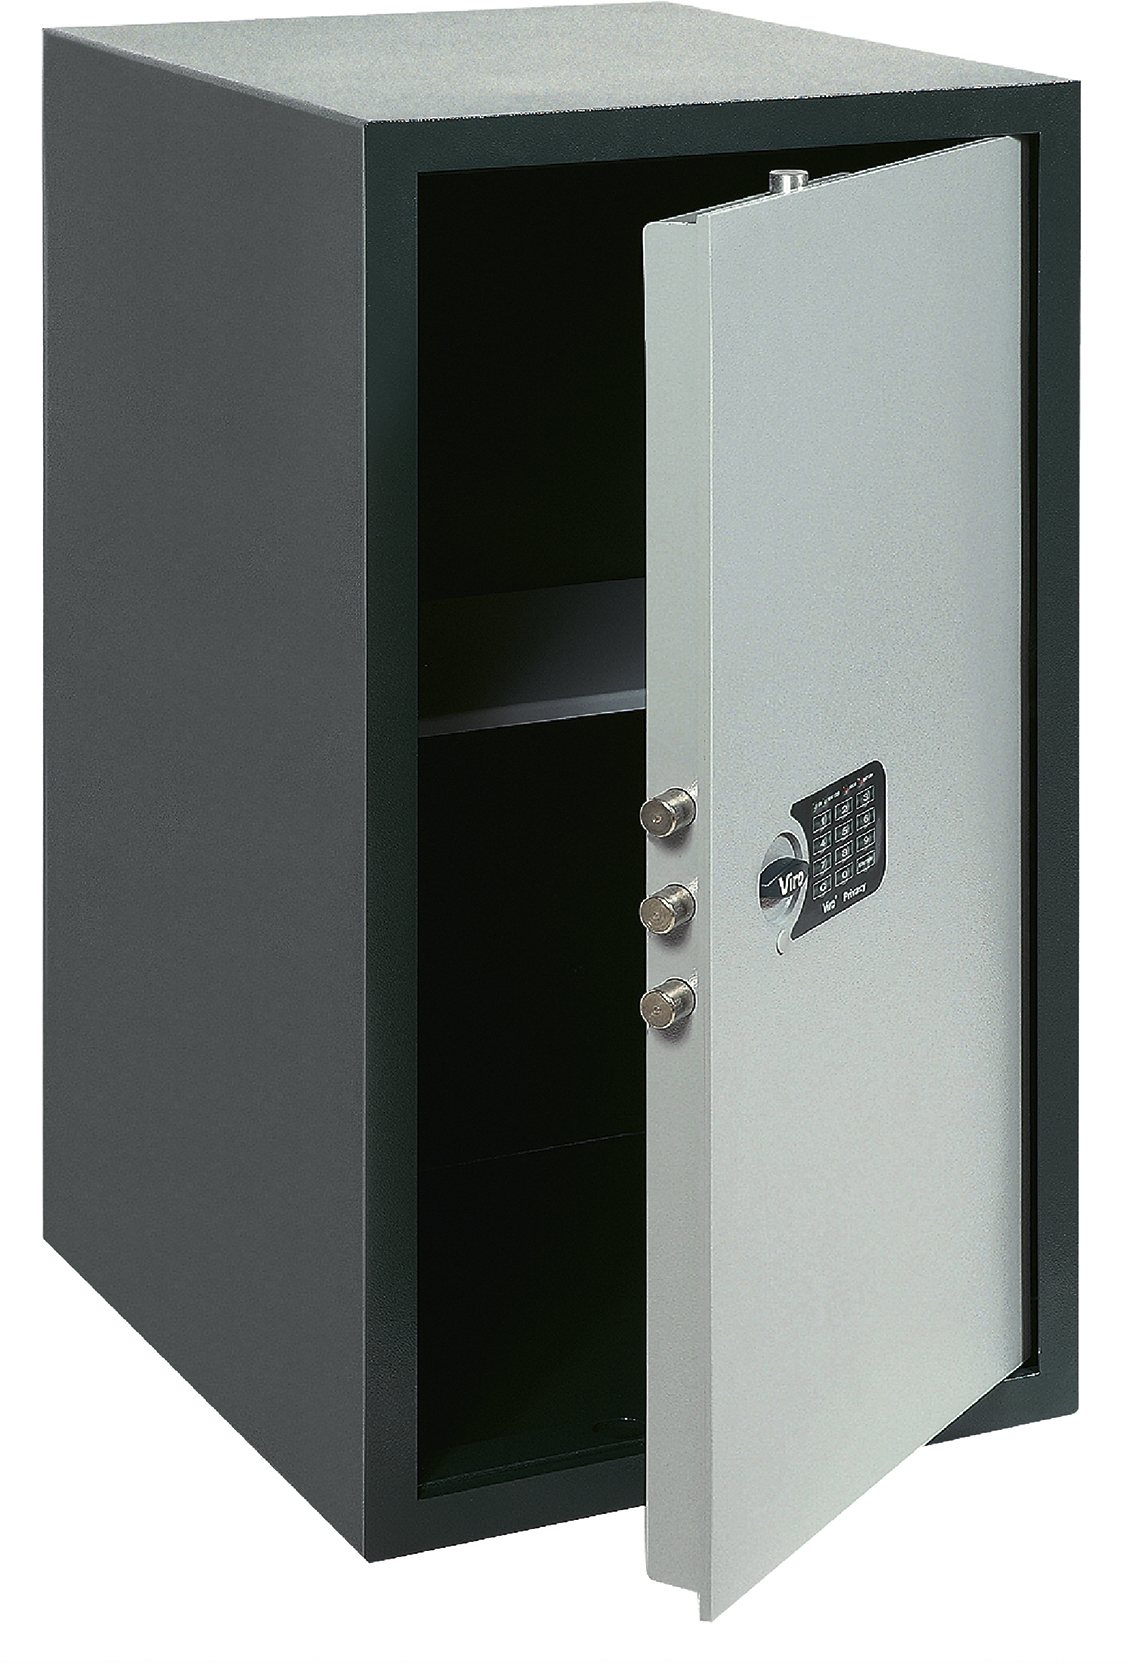 VIRO - Electronic safes with LEDs free standing safes for reception items 1.4396.2 - 1.4398.2